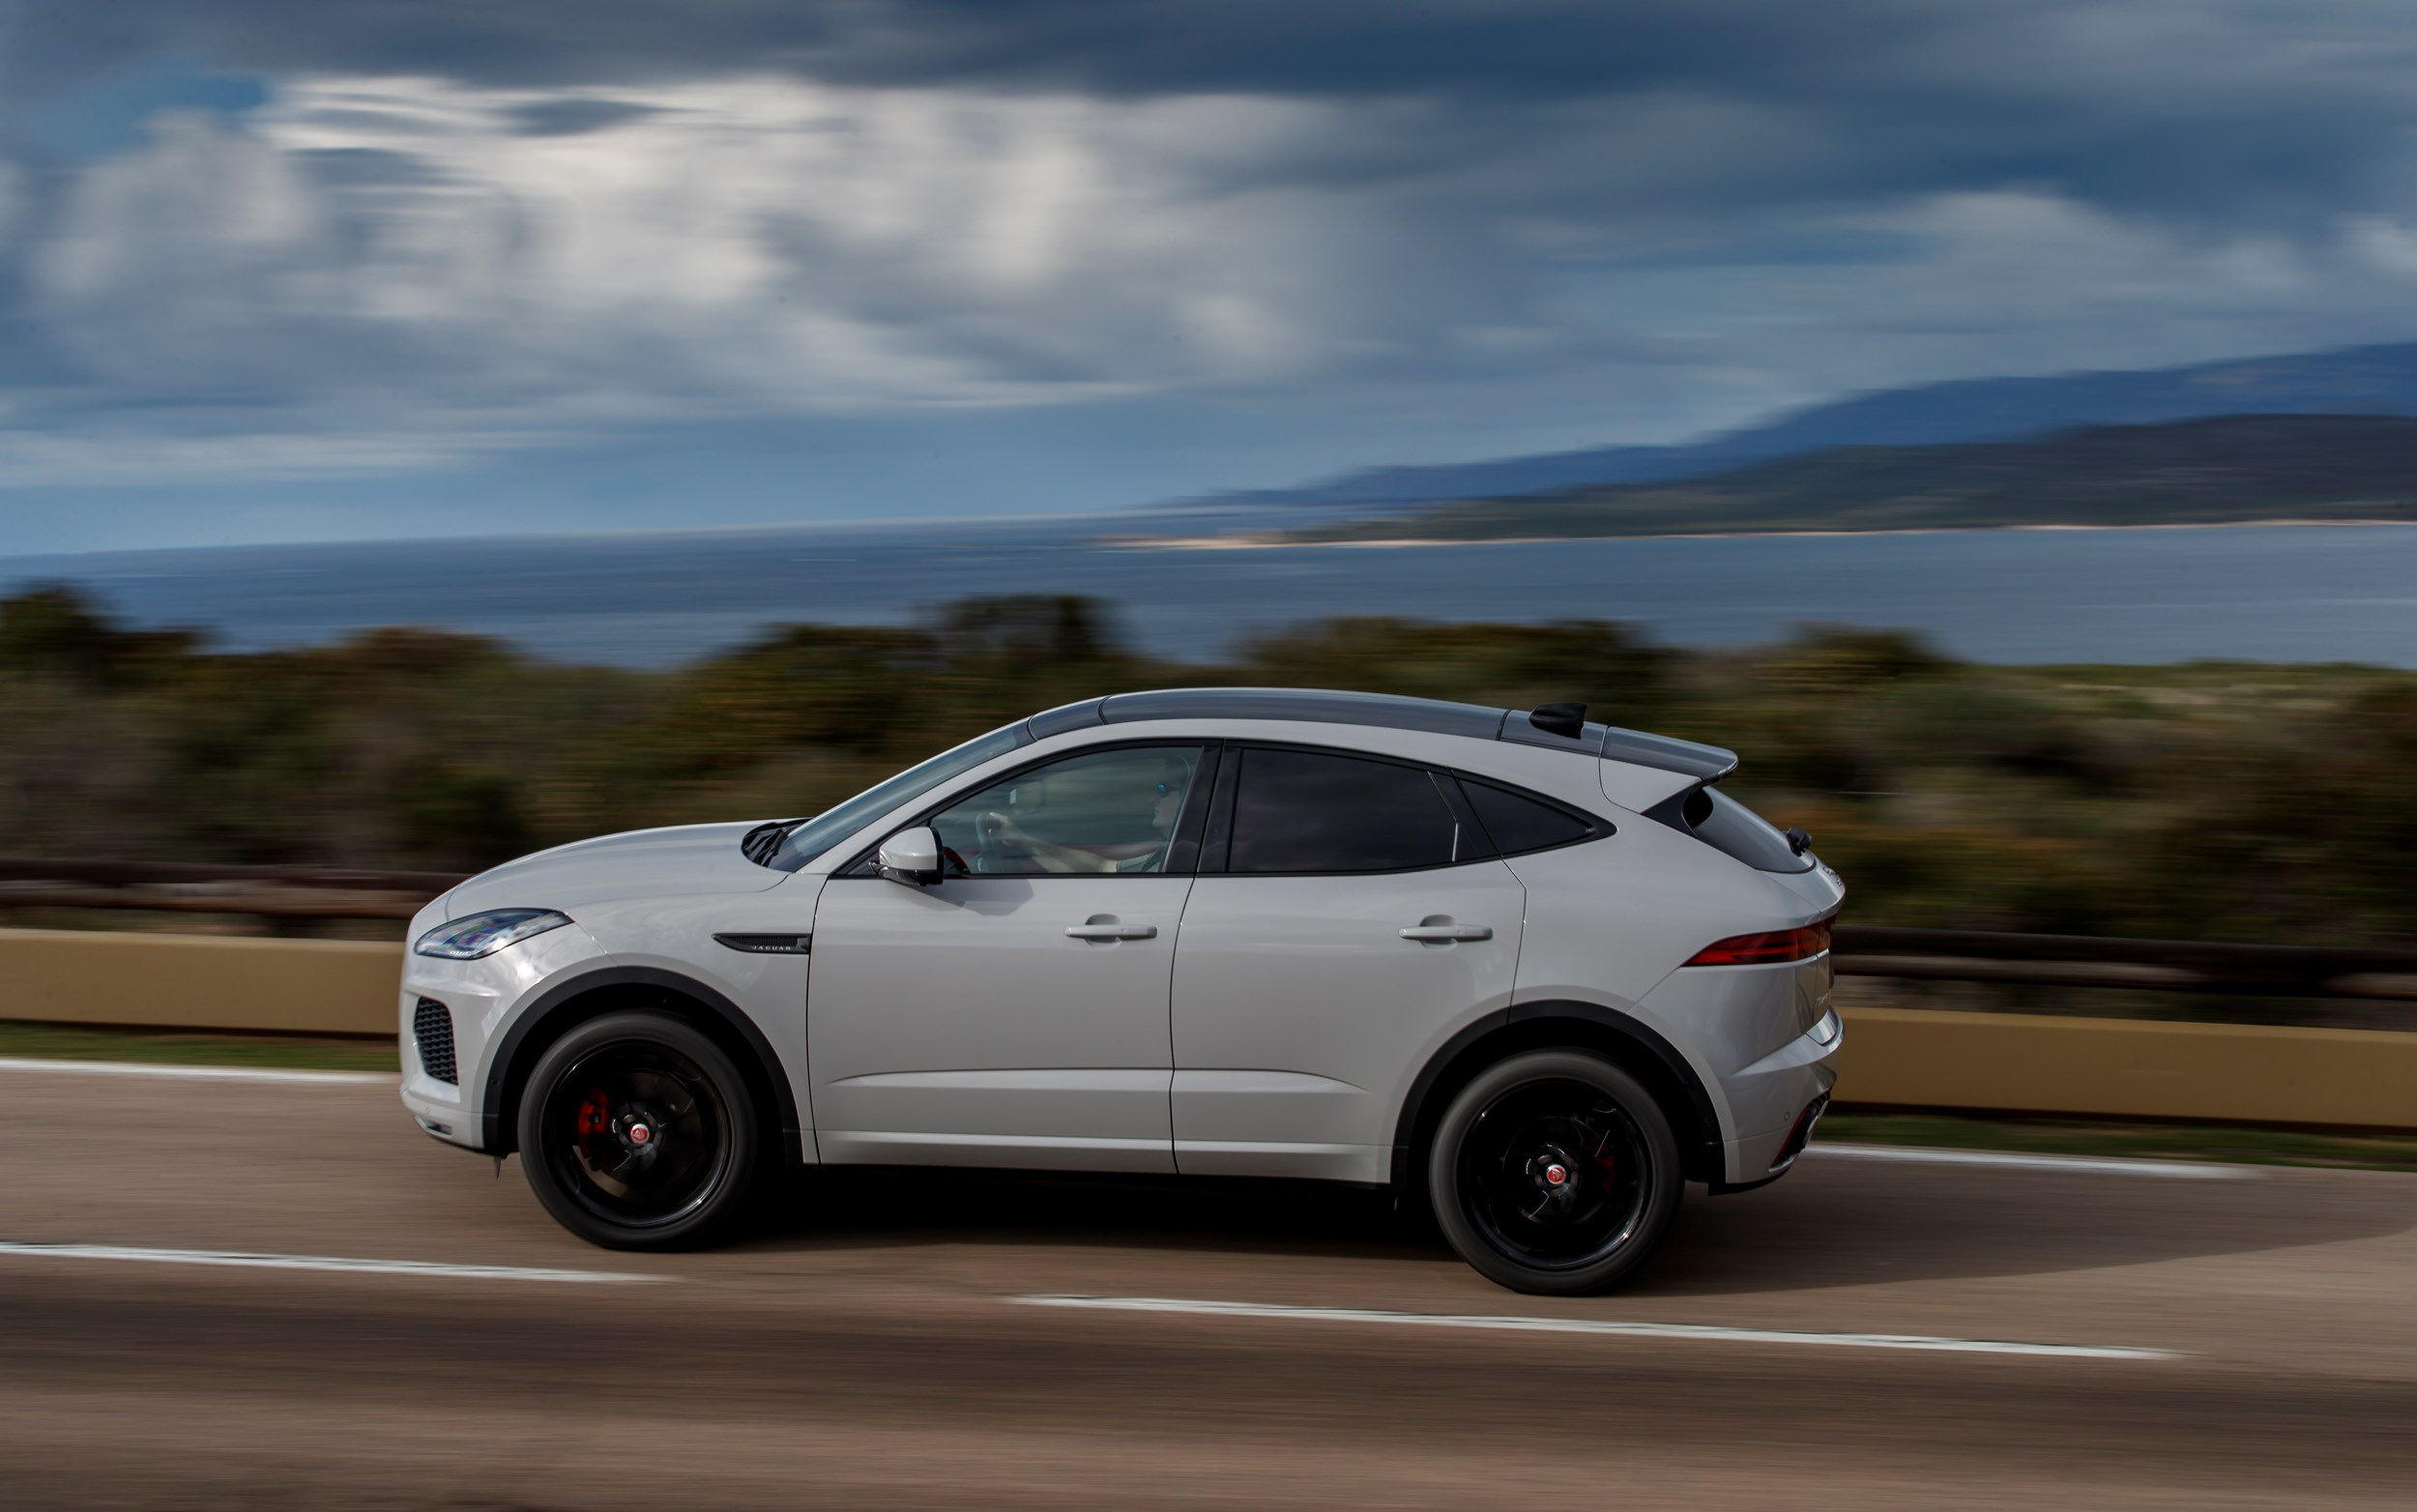 hd pictures quality price jaguar wallpapers list isj car high ultra xf